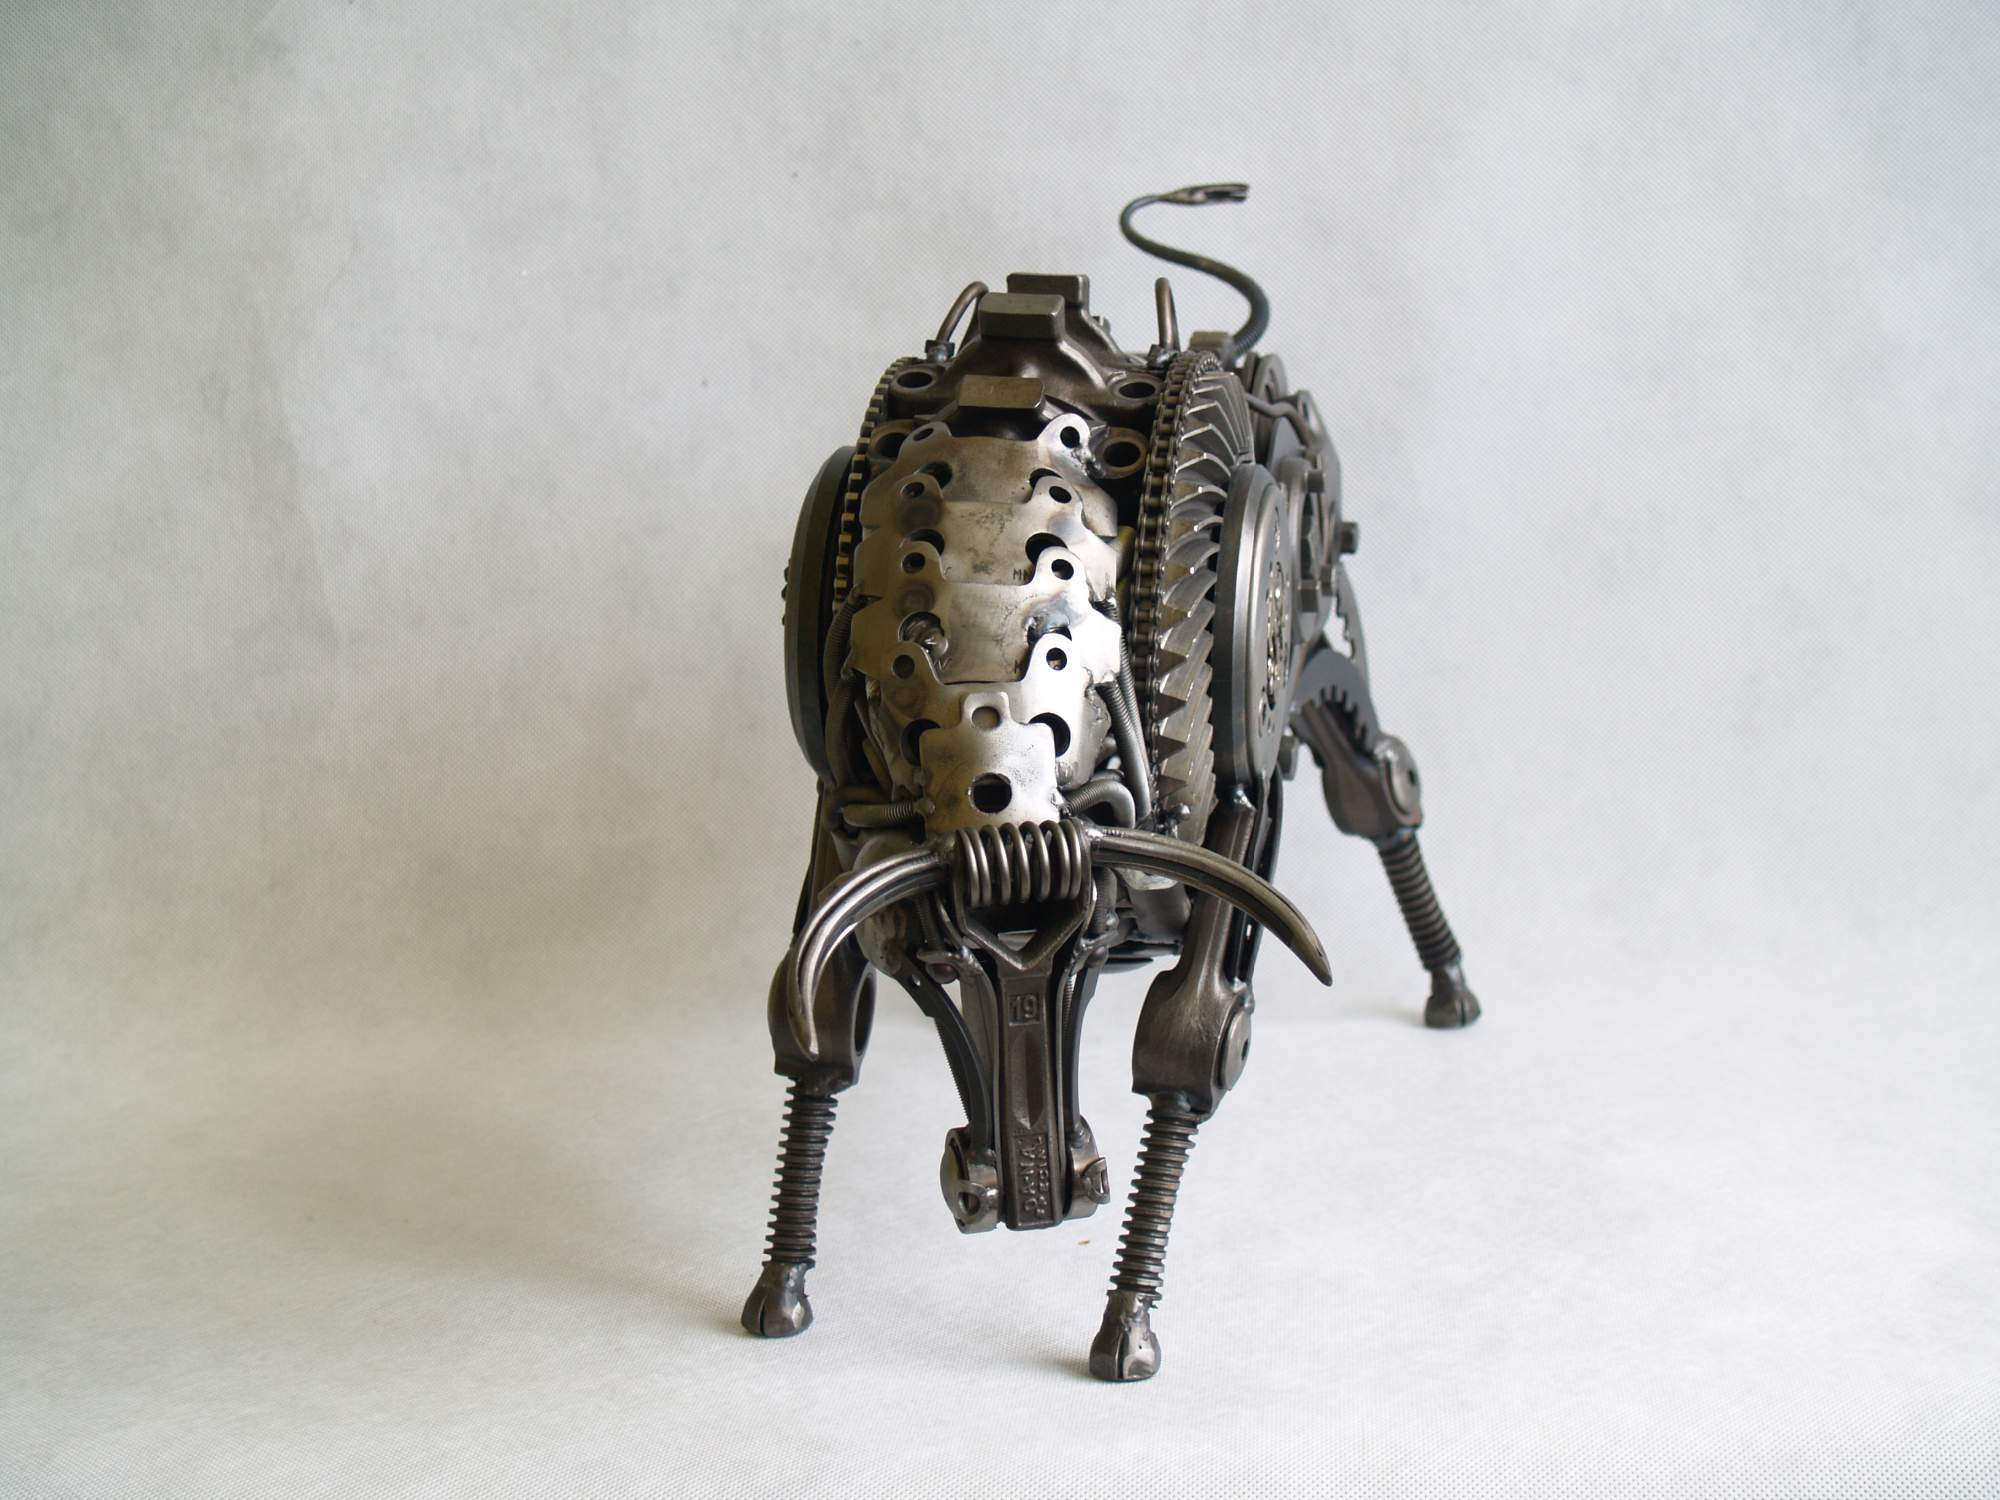 THE BULL sculpture made of scrap metal 3